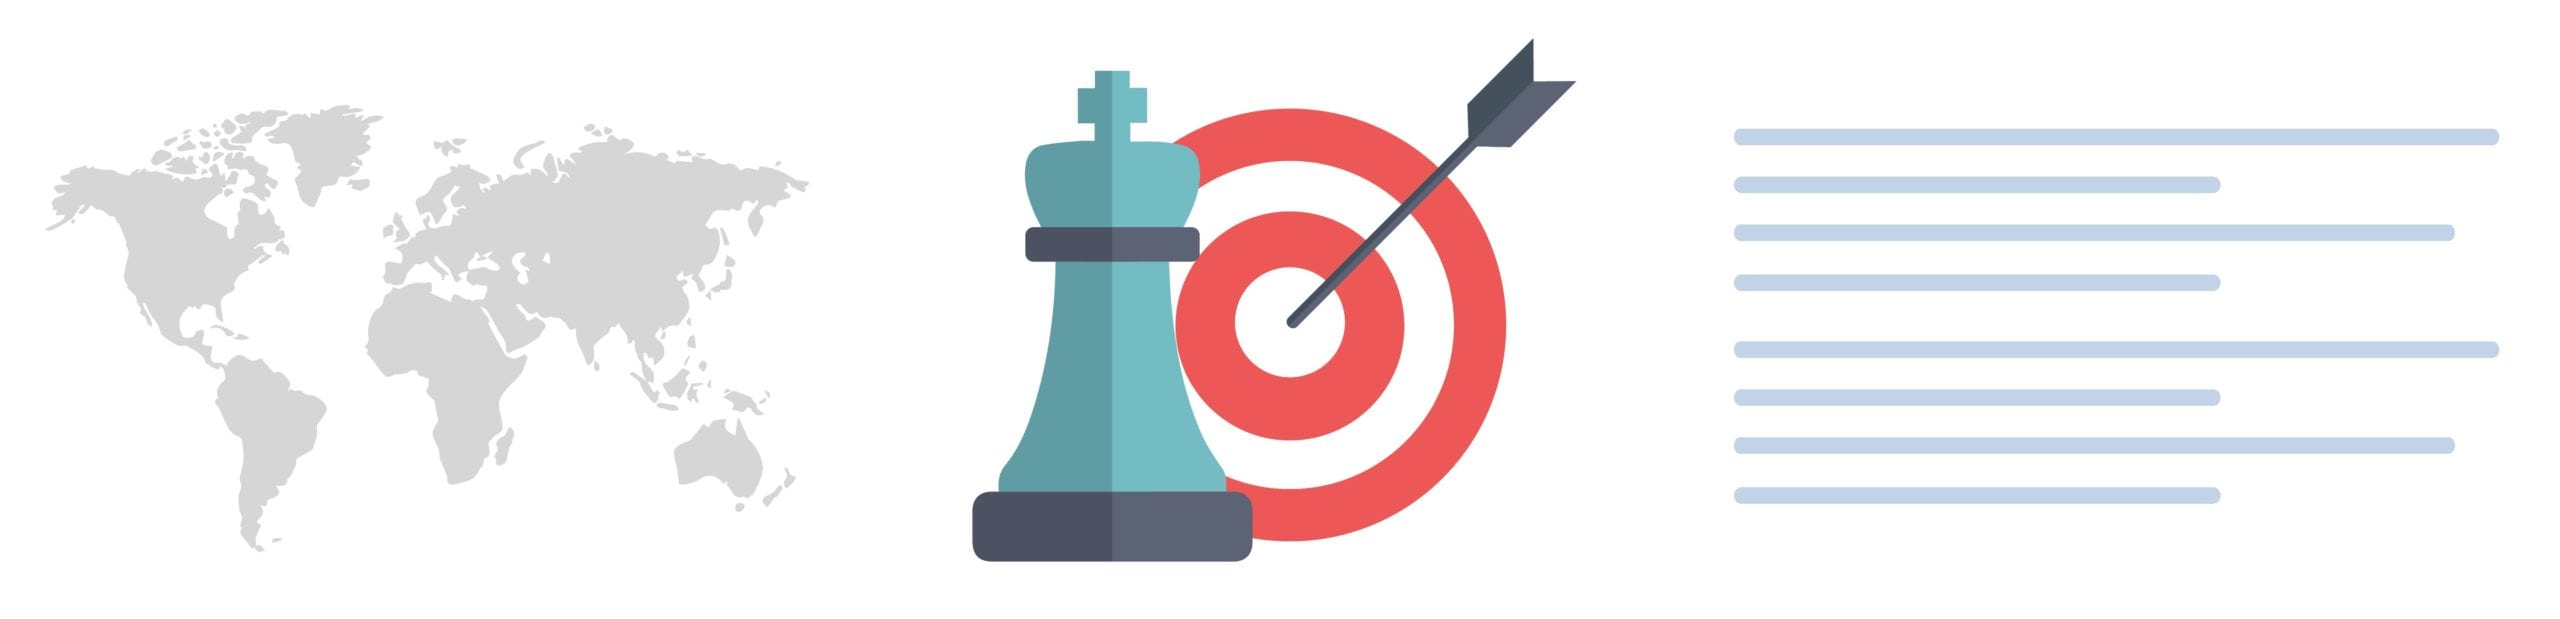 Strategy Goals Element With Chess Piece and Target With Arrow.